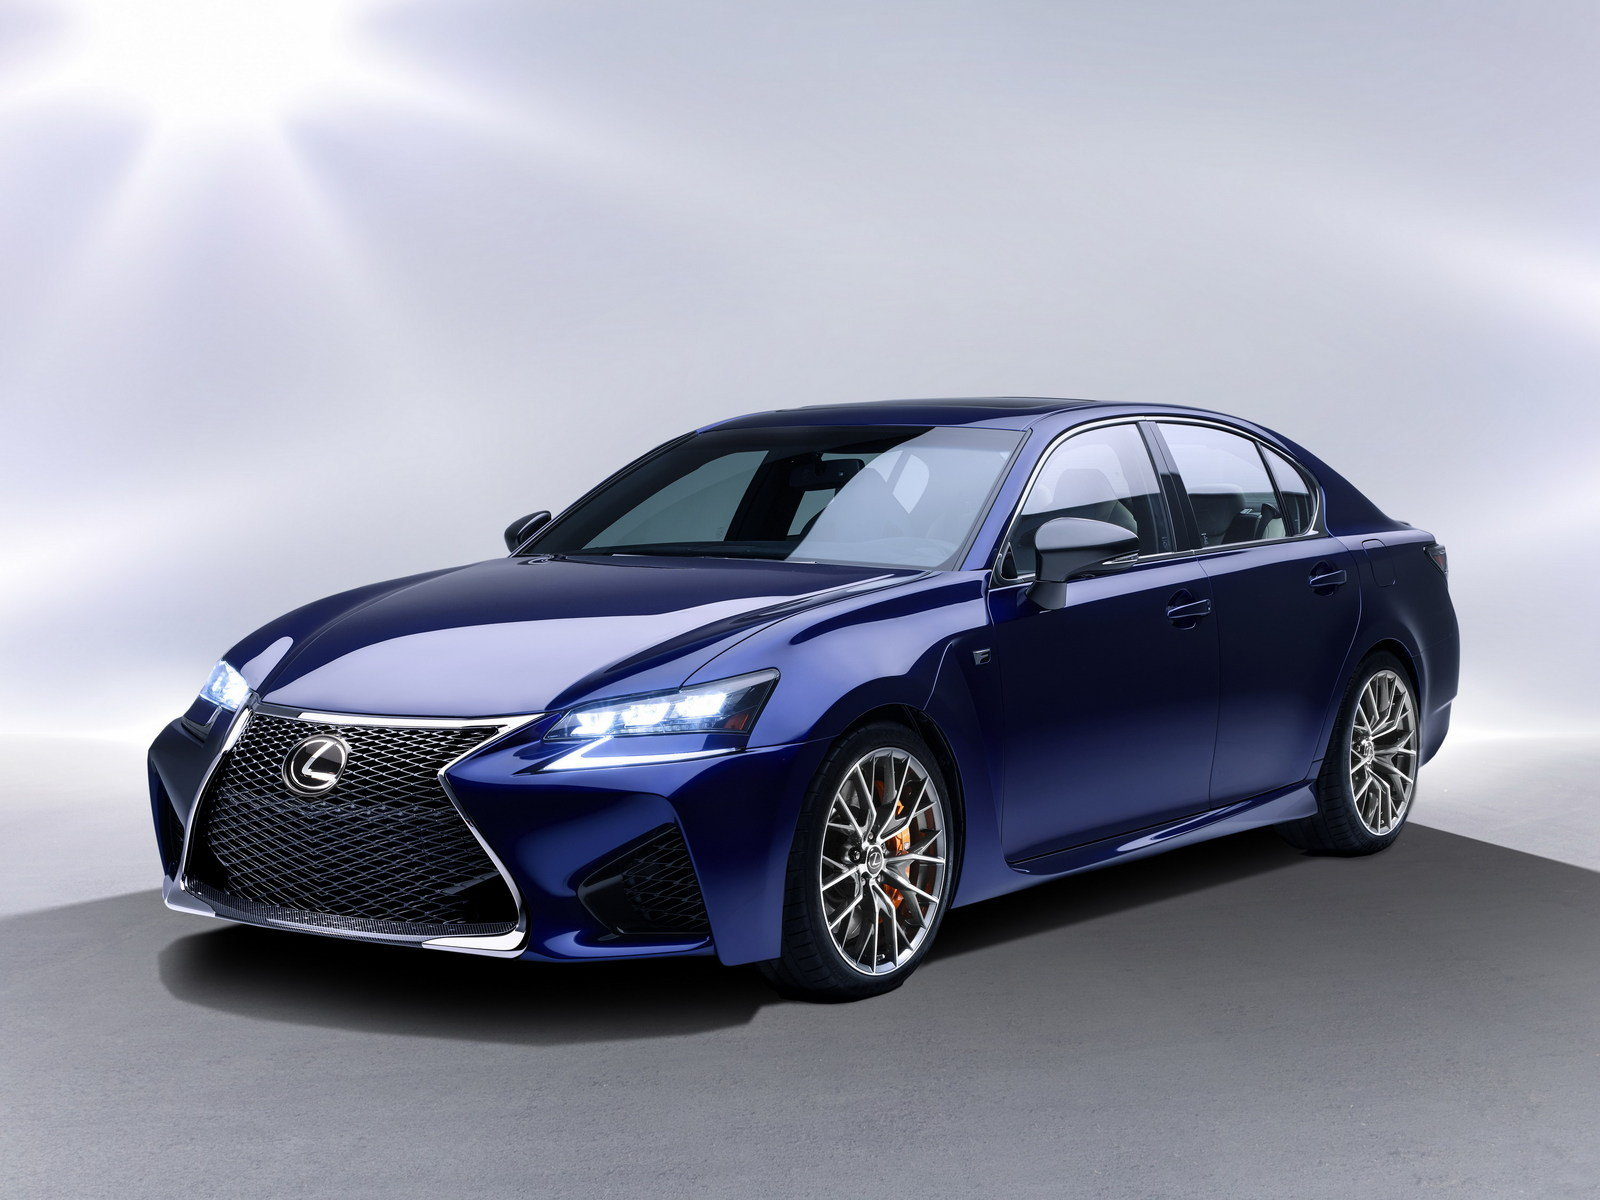 2016 lexus gs f picture 608999 car review top speed. Black Bedroom Furniture Sets. Home Design Ideas